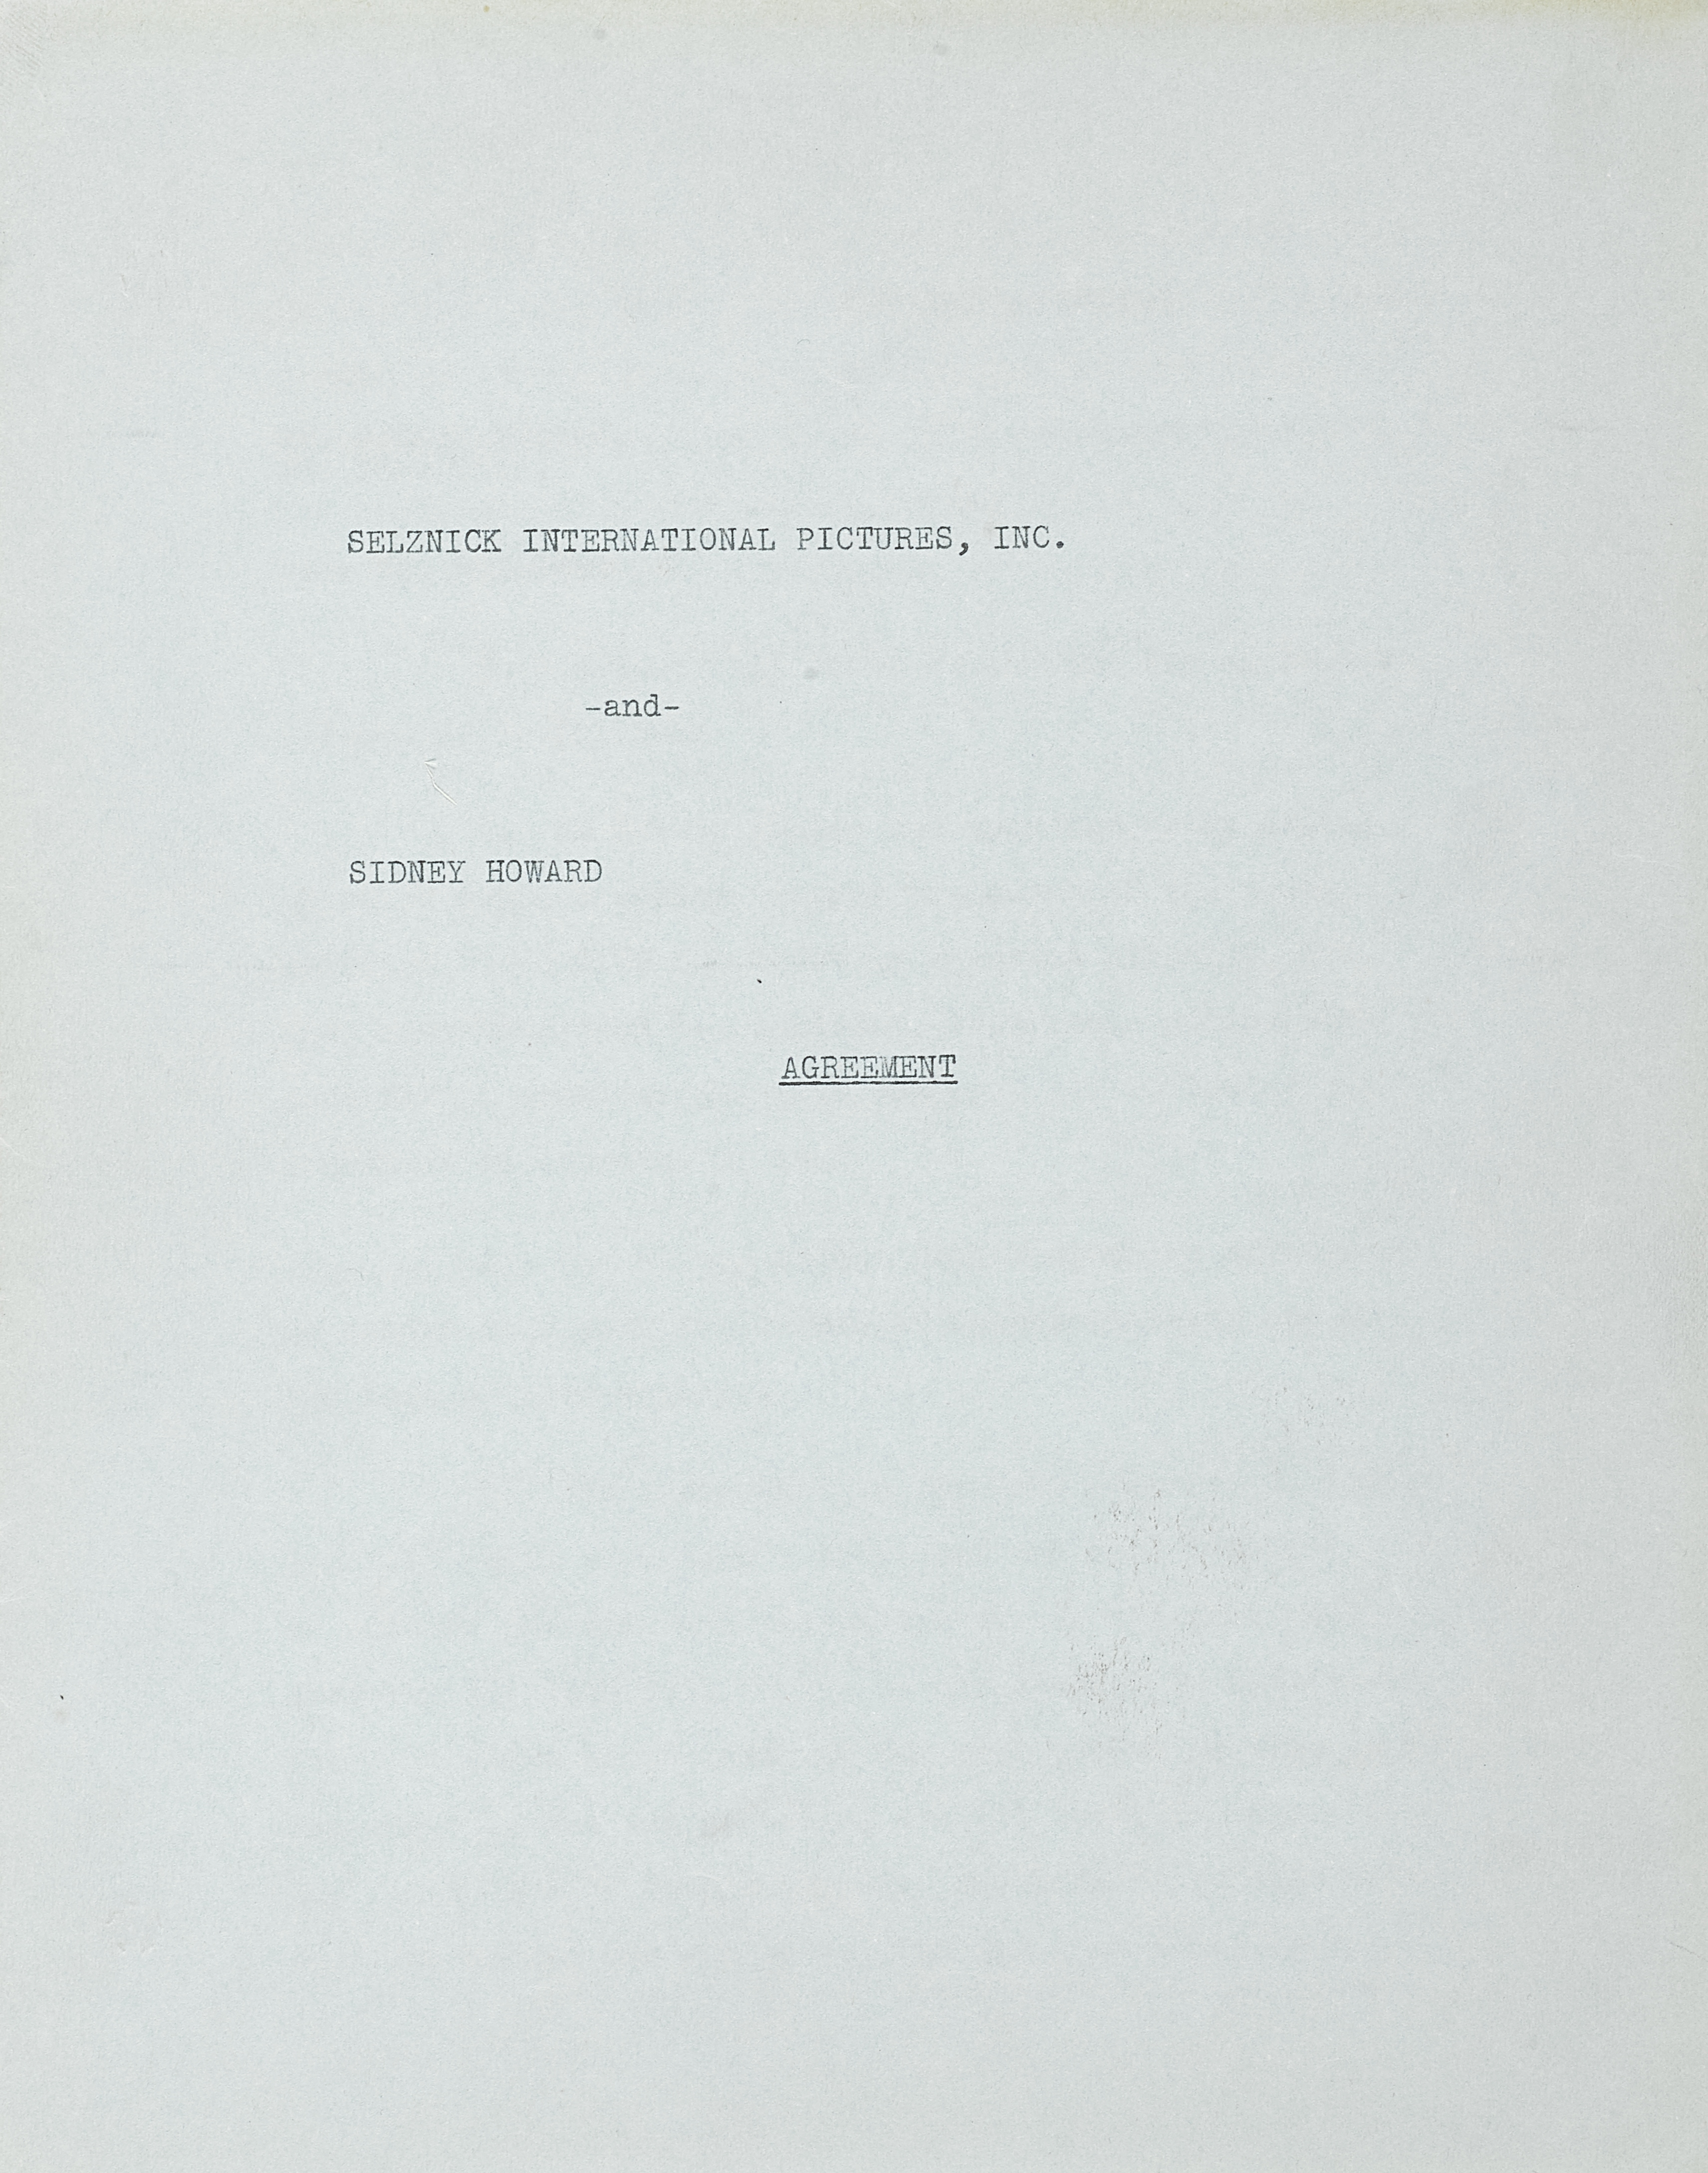 Lot 1031 - A Sidney Howard signed contract for Gone With the Wind